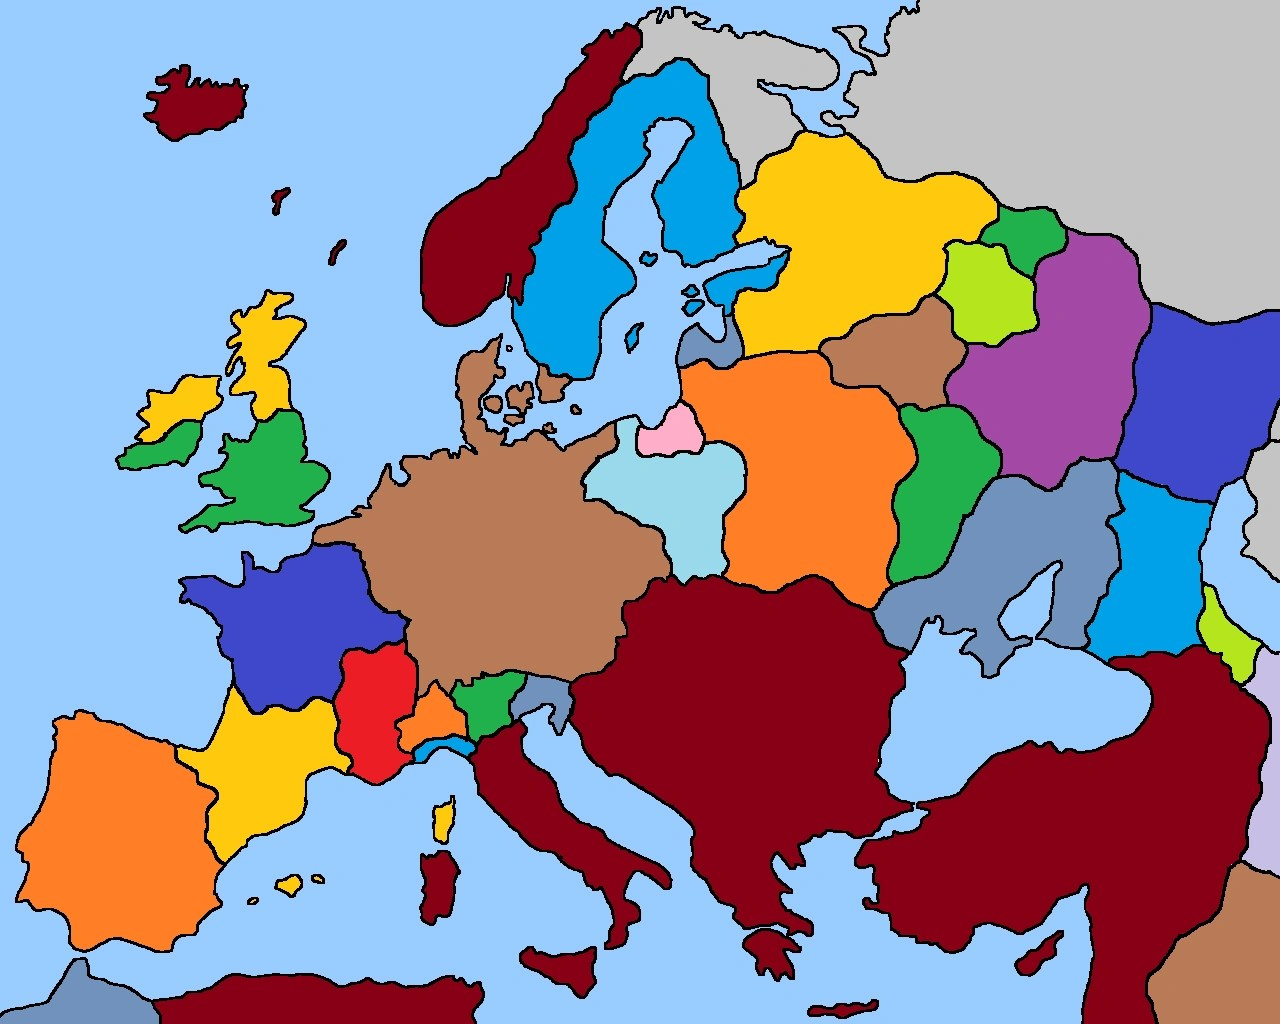 20+ 1500s Map Of Europe Pictures and Ideas on Meta Networks